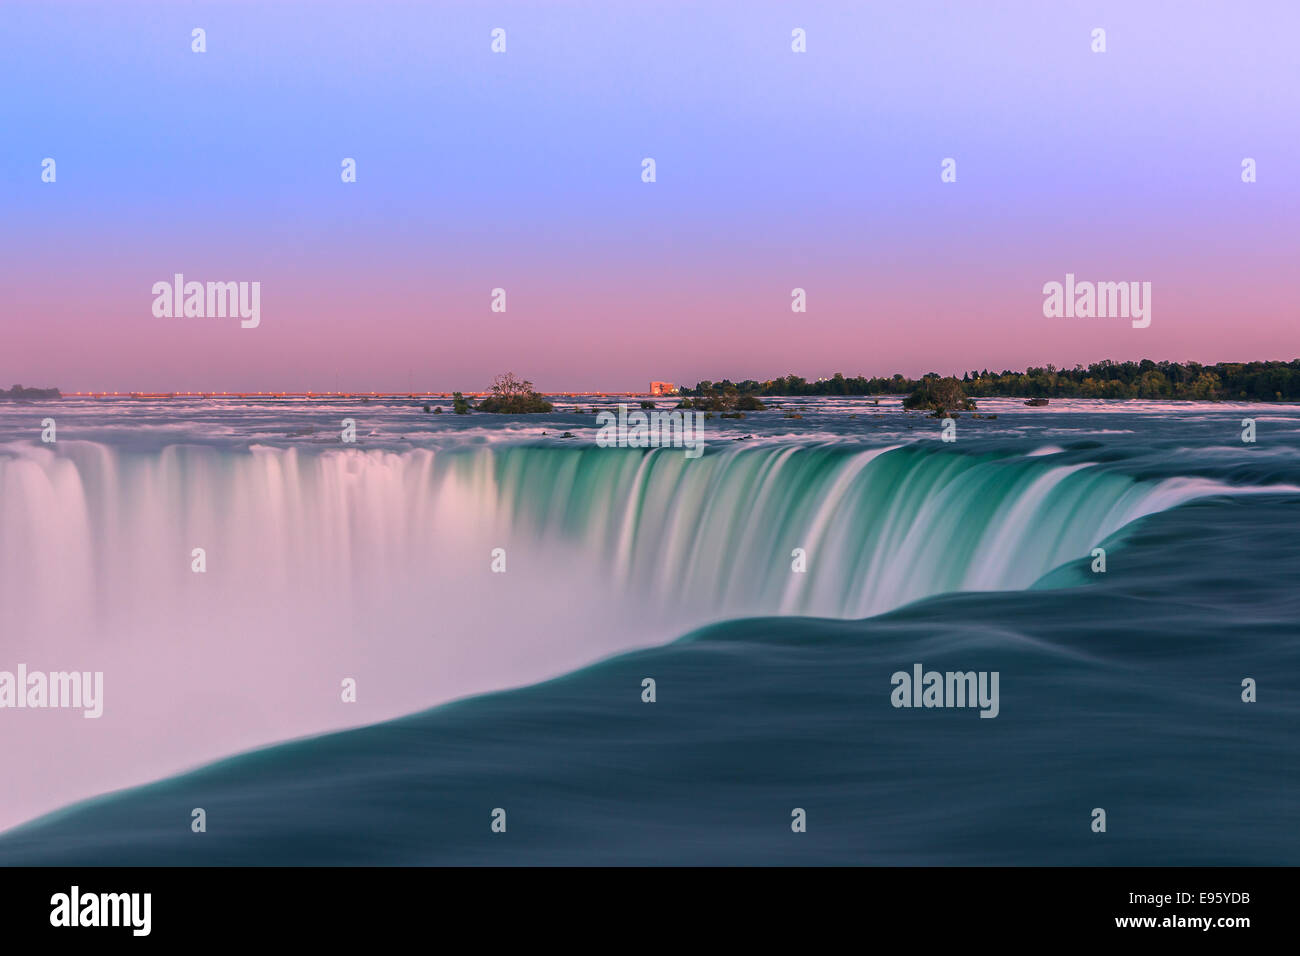 Horseshoe Falls at sunset, part of the Niagara Falls, Ontario, Canada. - Stock Image